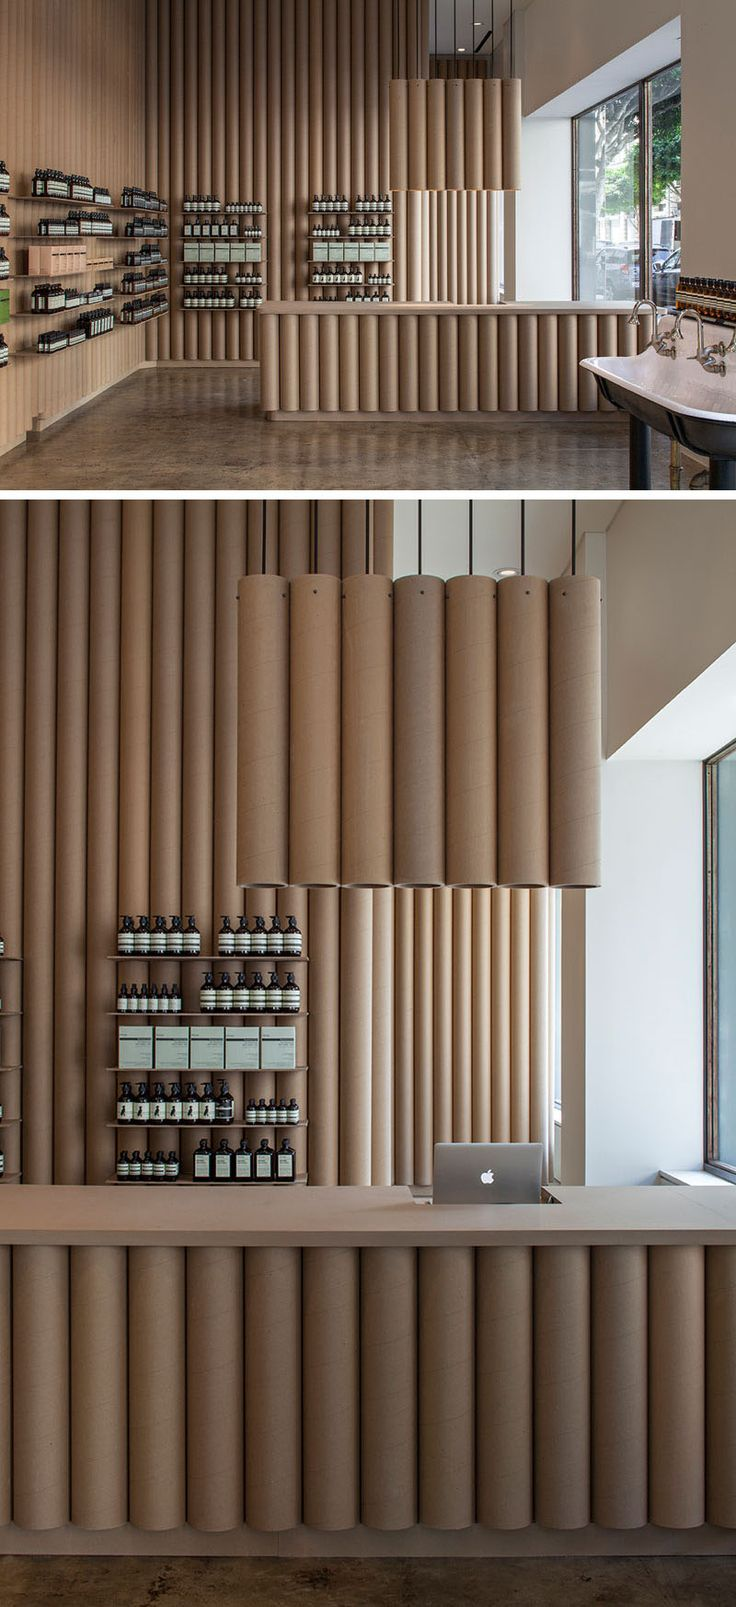 Cardboard Tubes Have Been Used Throughout This Aesop Store In Downtown LA Interior DesignModern